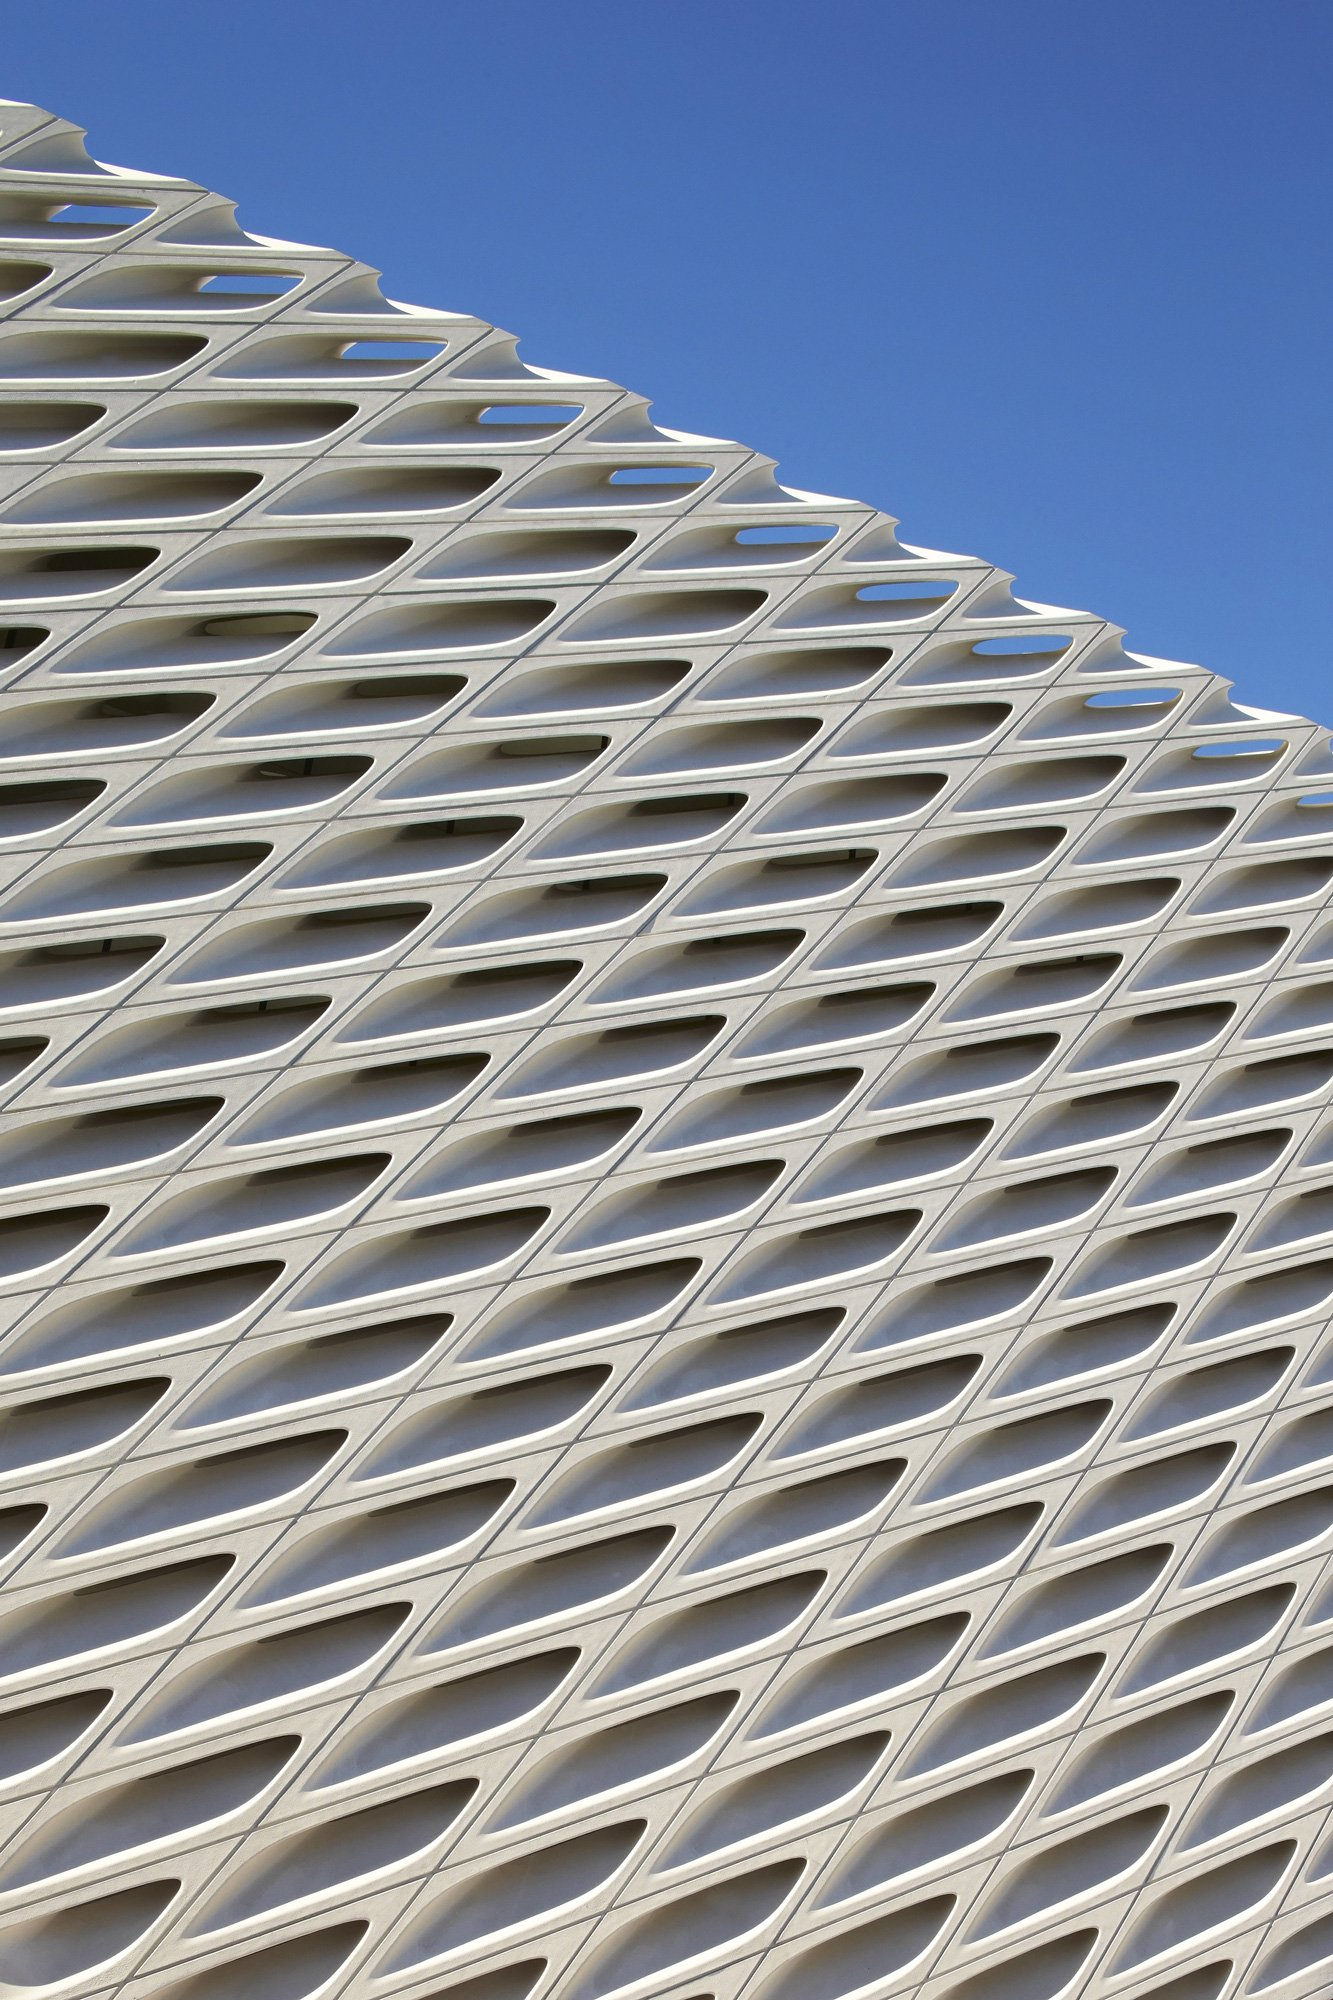 Contemporary Art Museum The Broad © Hufton+Crow, courtesy of The Broad and Diller Scofidio + Renfro